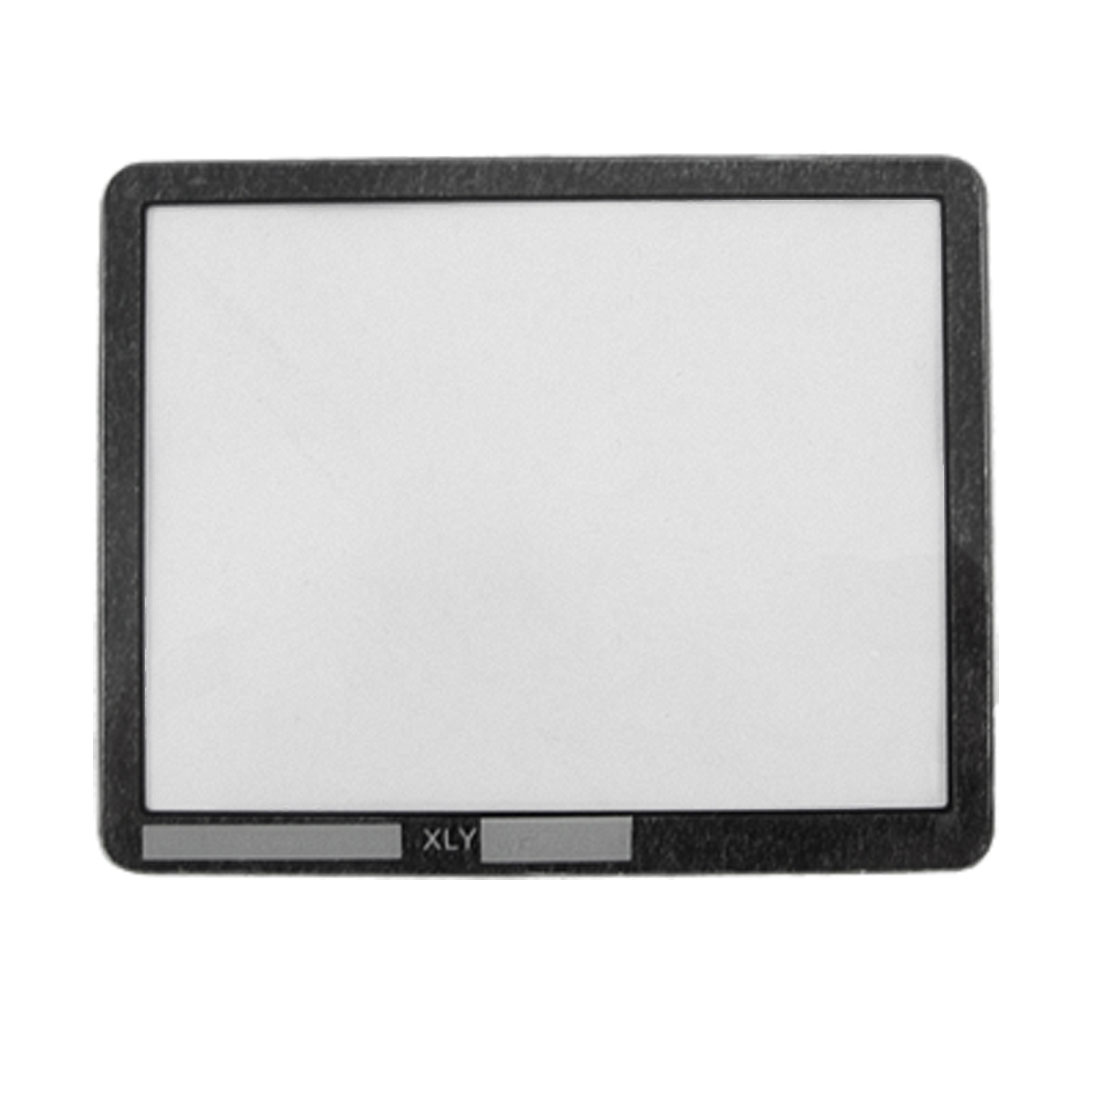 DSLR LCD Optical Glass Screen Protector Guard for Canon EOS 5D Mark II